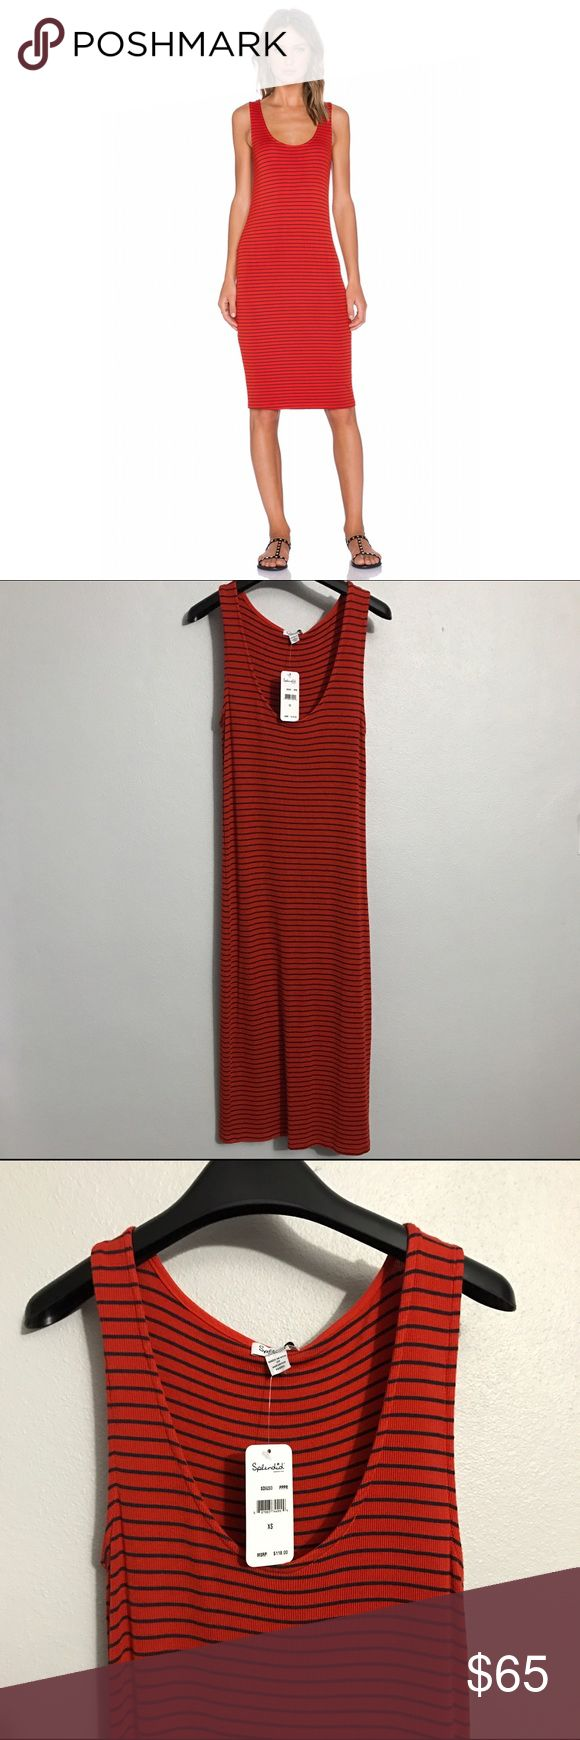 Splendid chic striped body-con dress. Figure flattering, mid-length with scoop neckline dress. Very soft fabric with some stretch. Splendid Dresses